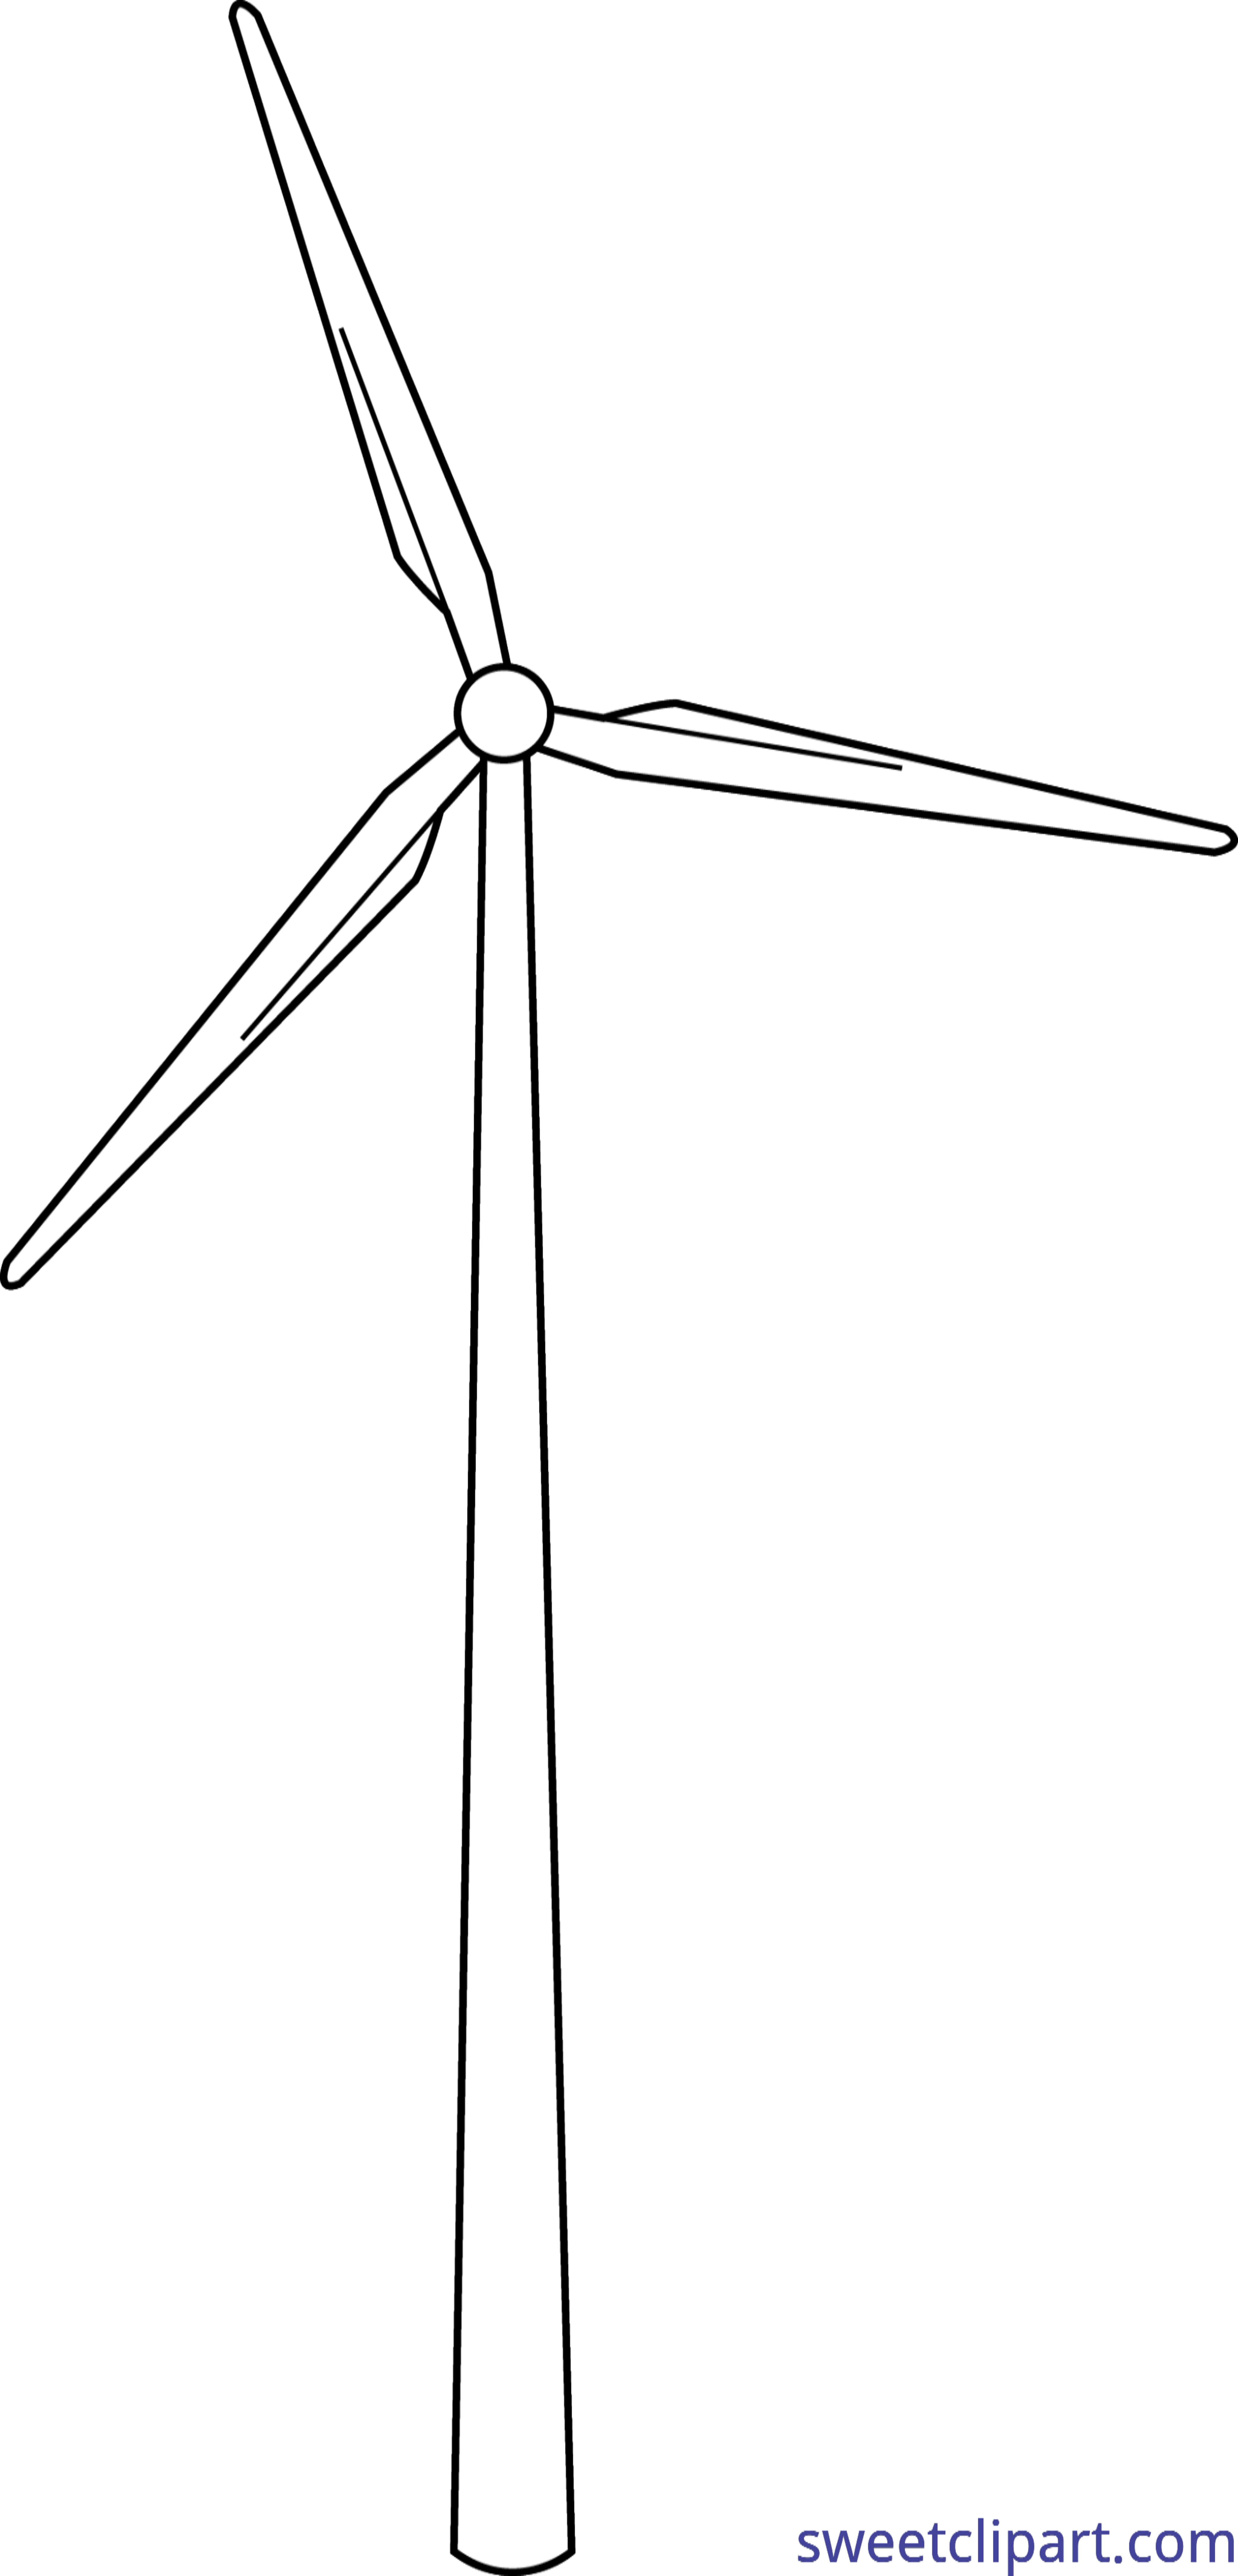 image royalty free Lineart clip art sweet. Windmill clipart